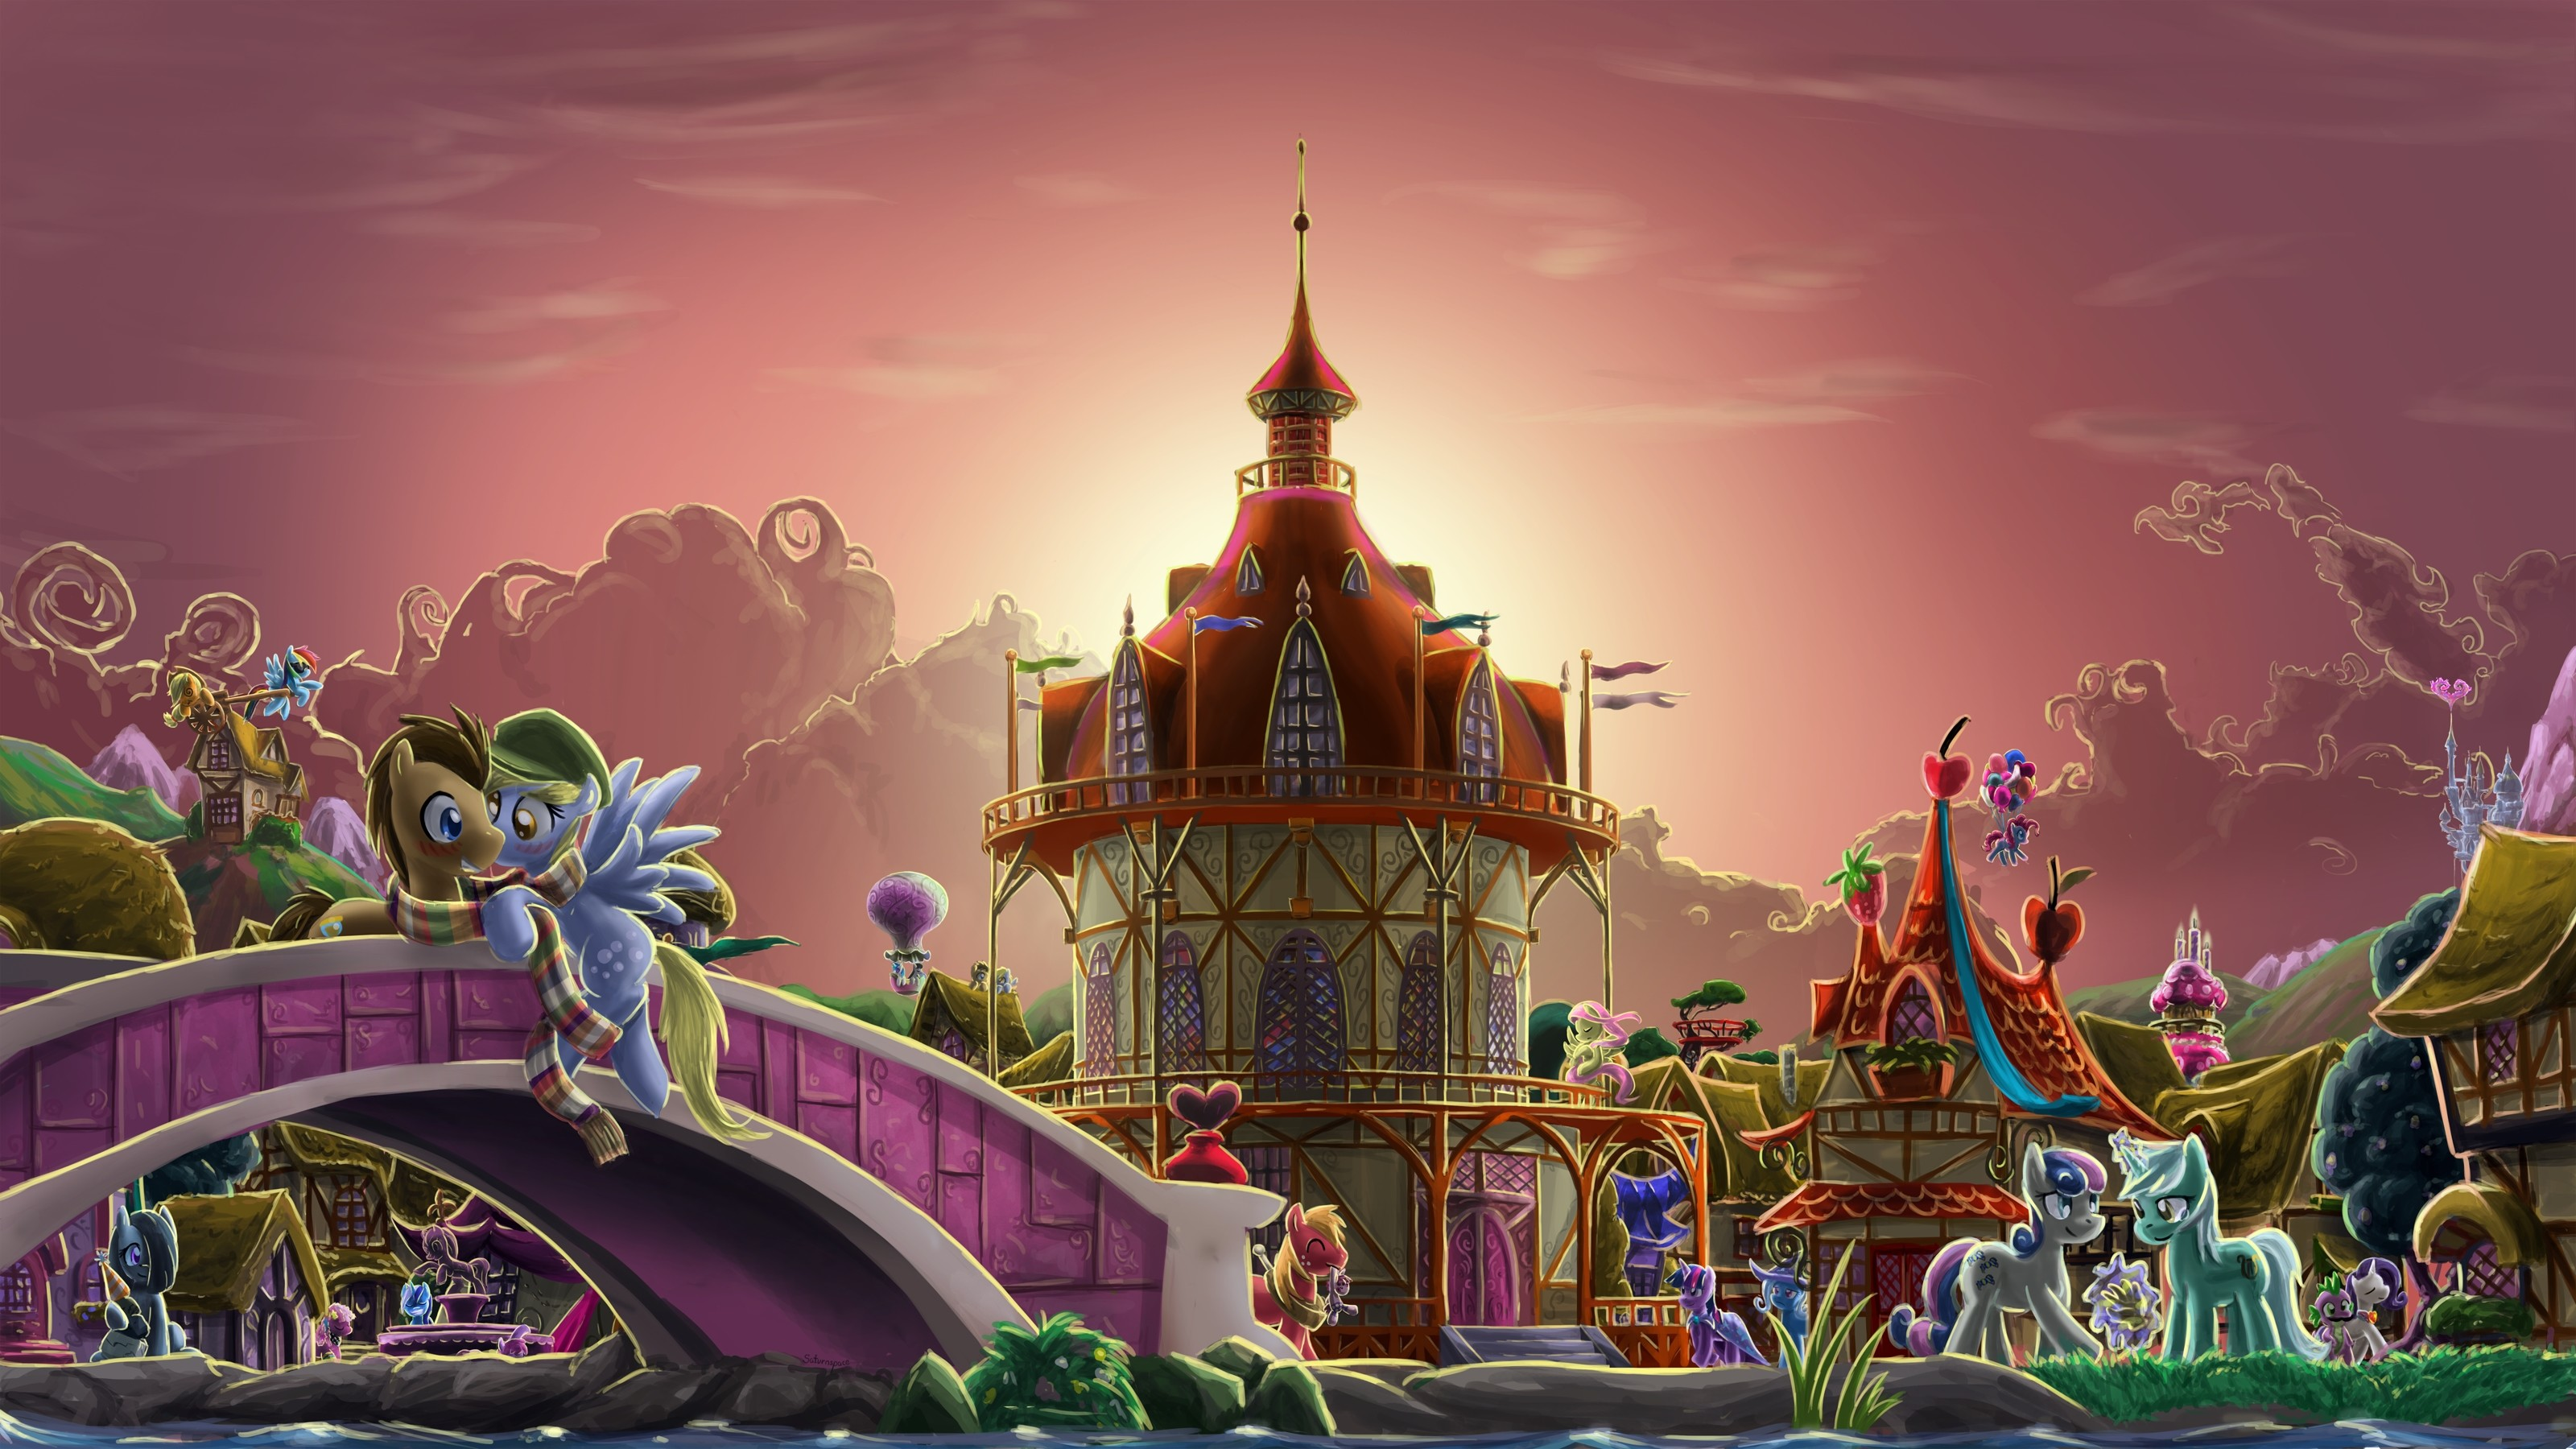 Res: 3200x1800, town my little pony ponies my little pony friendship is magic ponyville   wallpaper Art HD